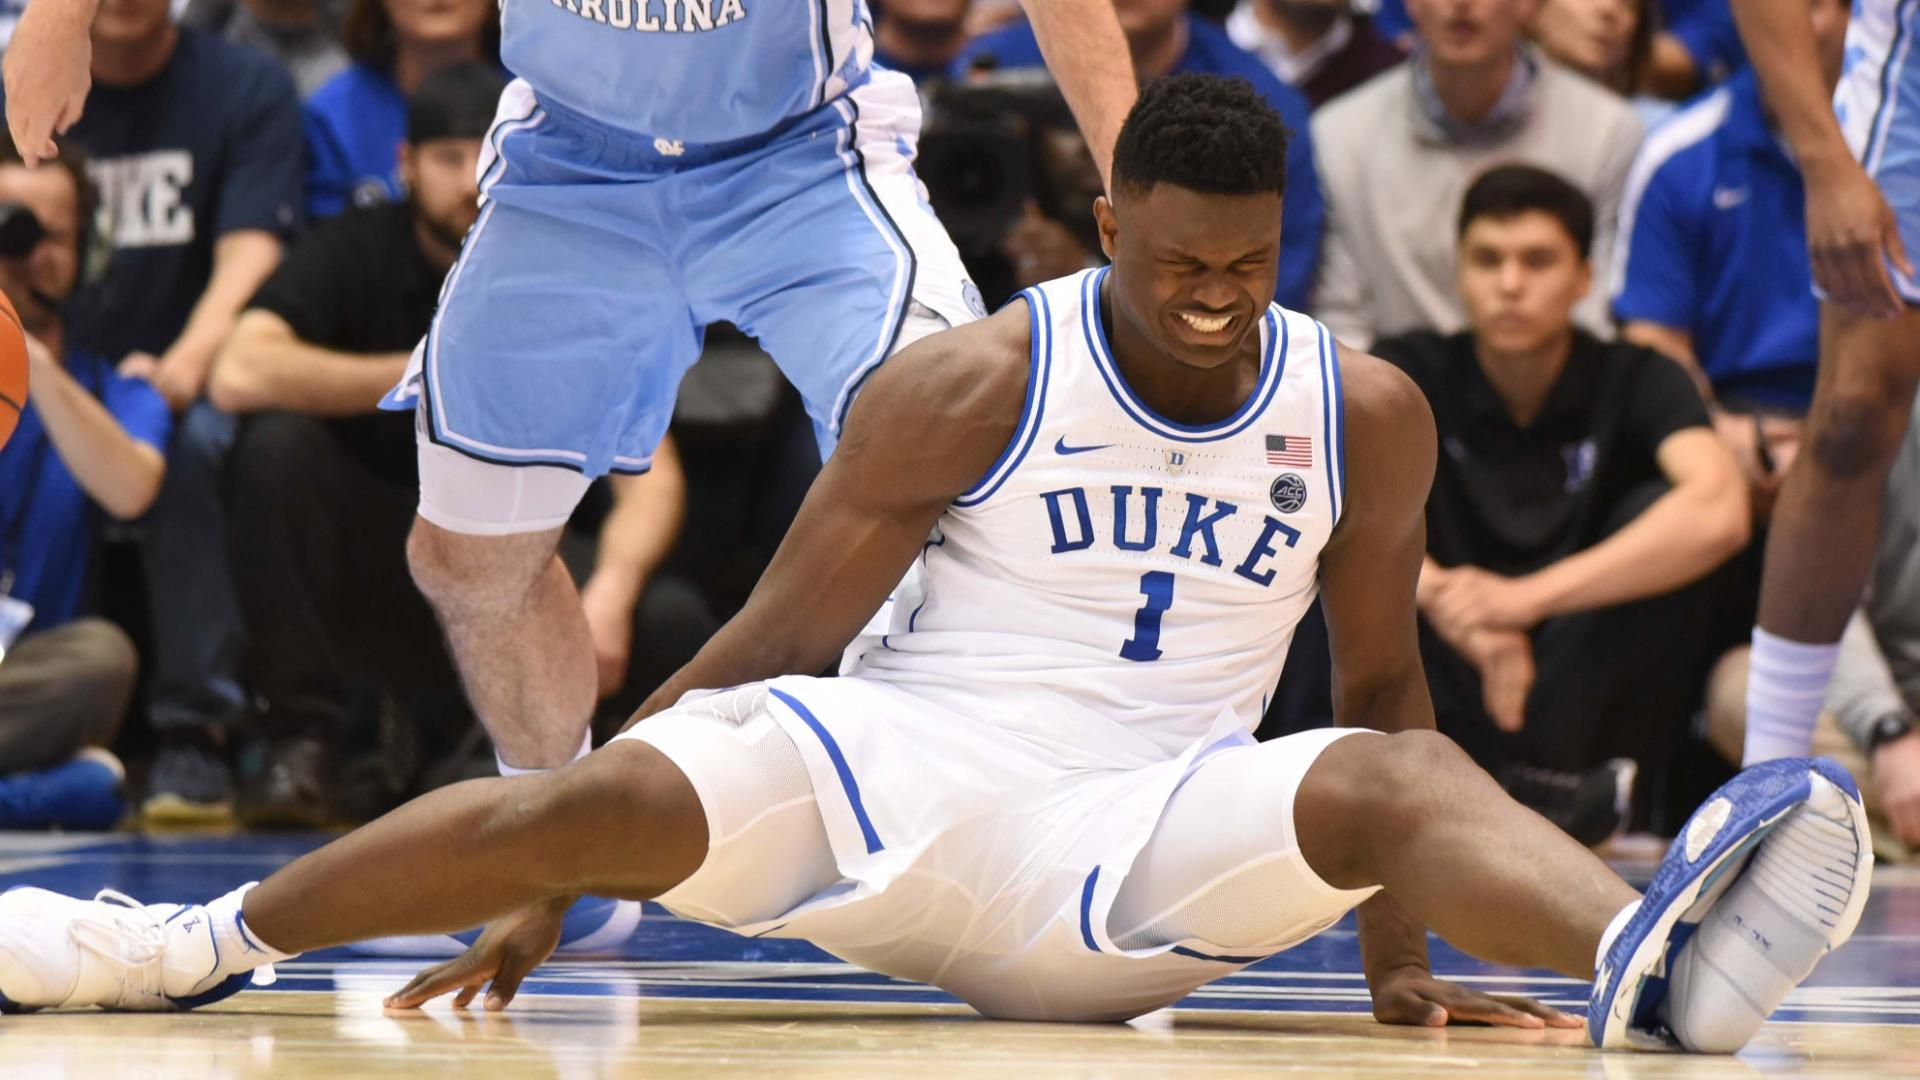 Johnson, Maye take control after Zion's injury